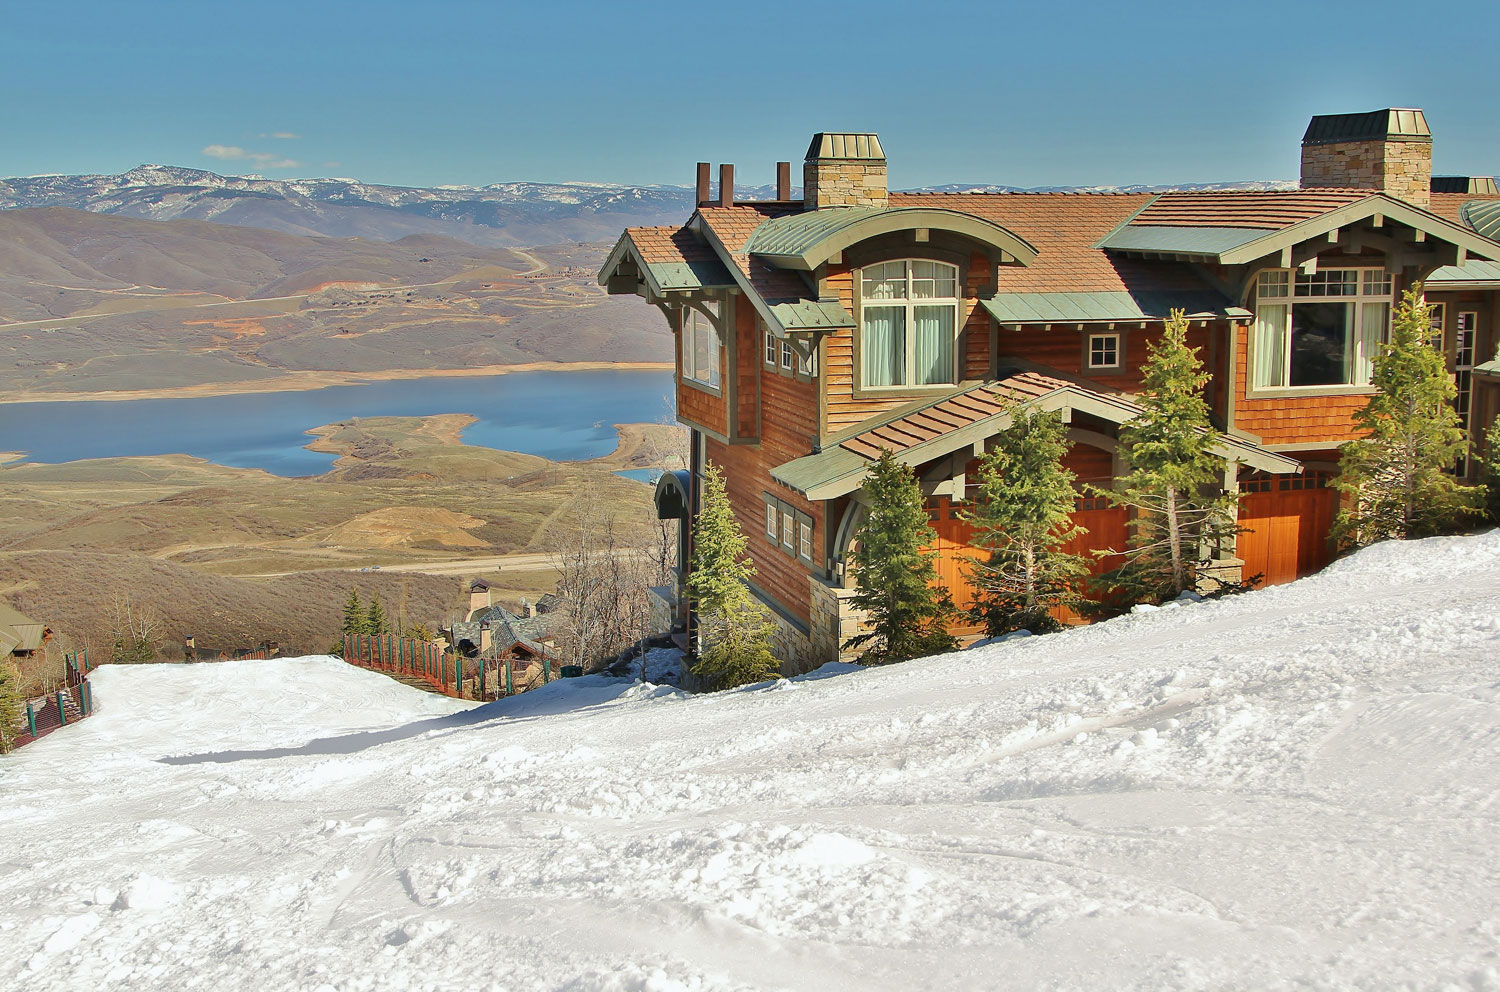 Deer Valley, Utah<br/><i>$6,495,000</i>